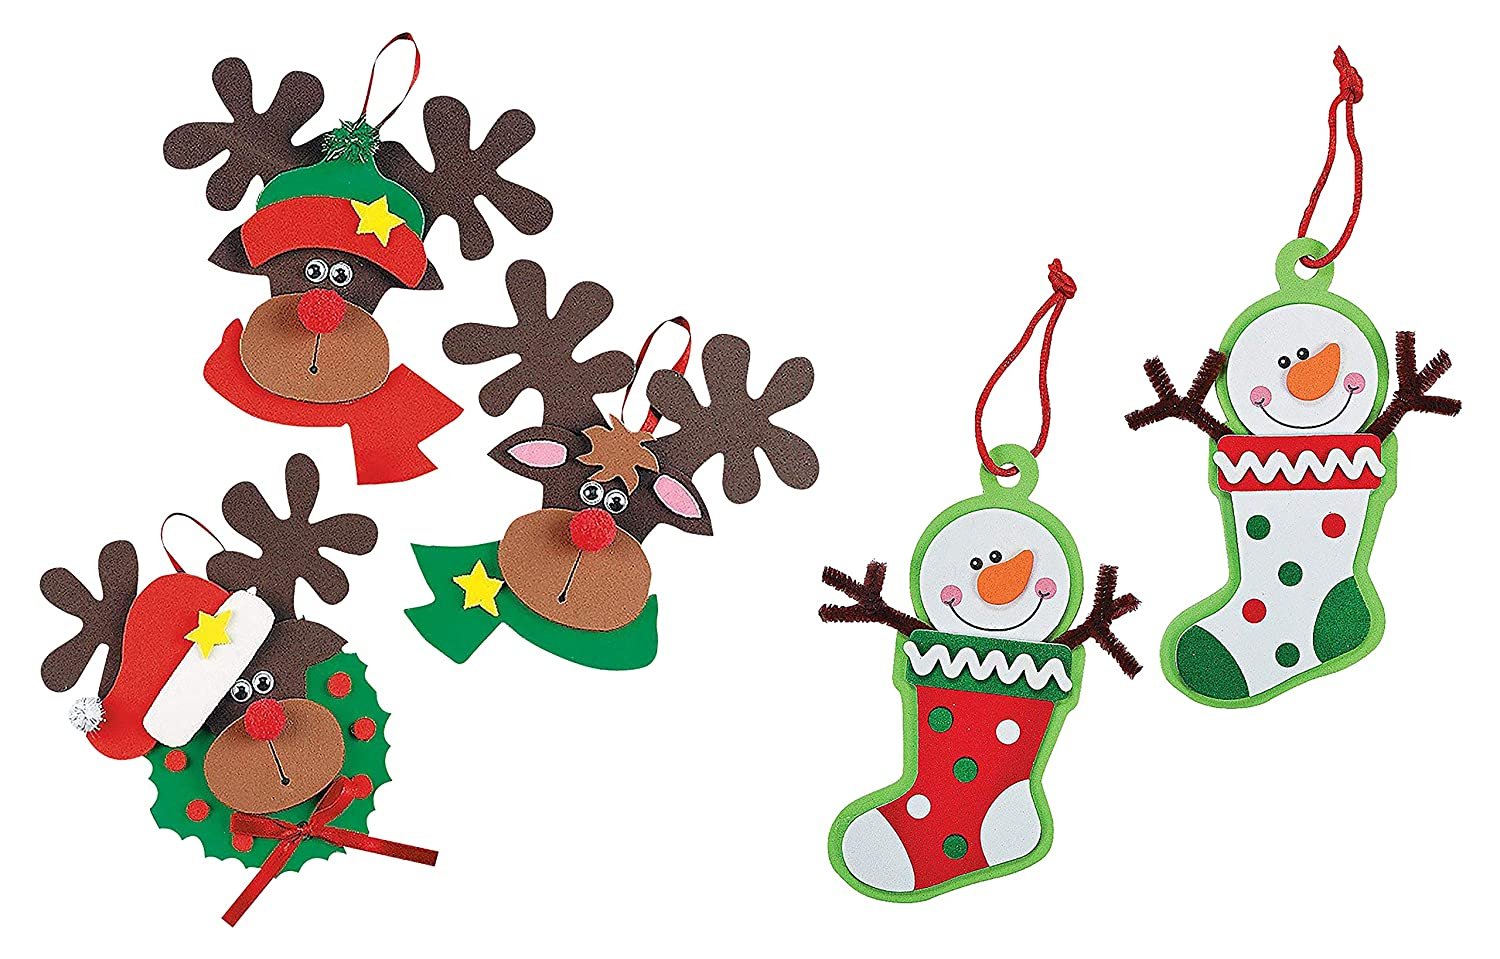 Reindeer and Snowman Christmas Ornament Kits Set of 24 Christmas Crafts for Kids